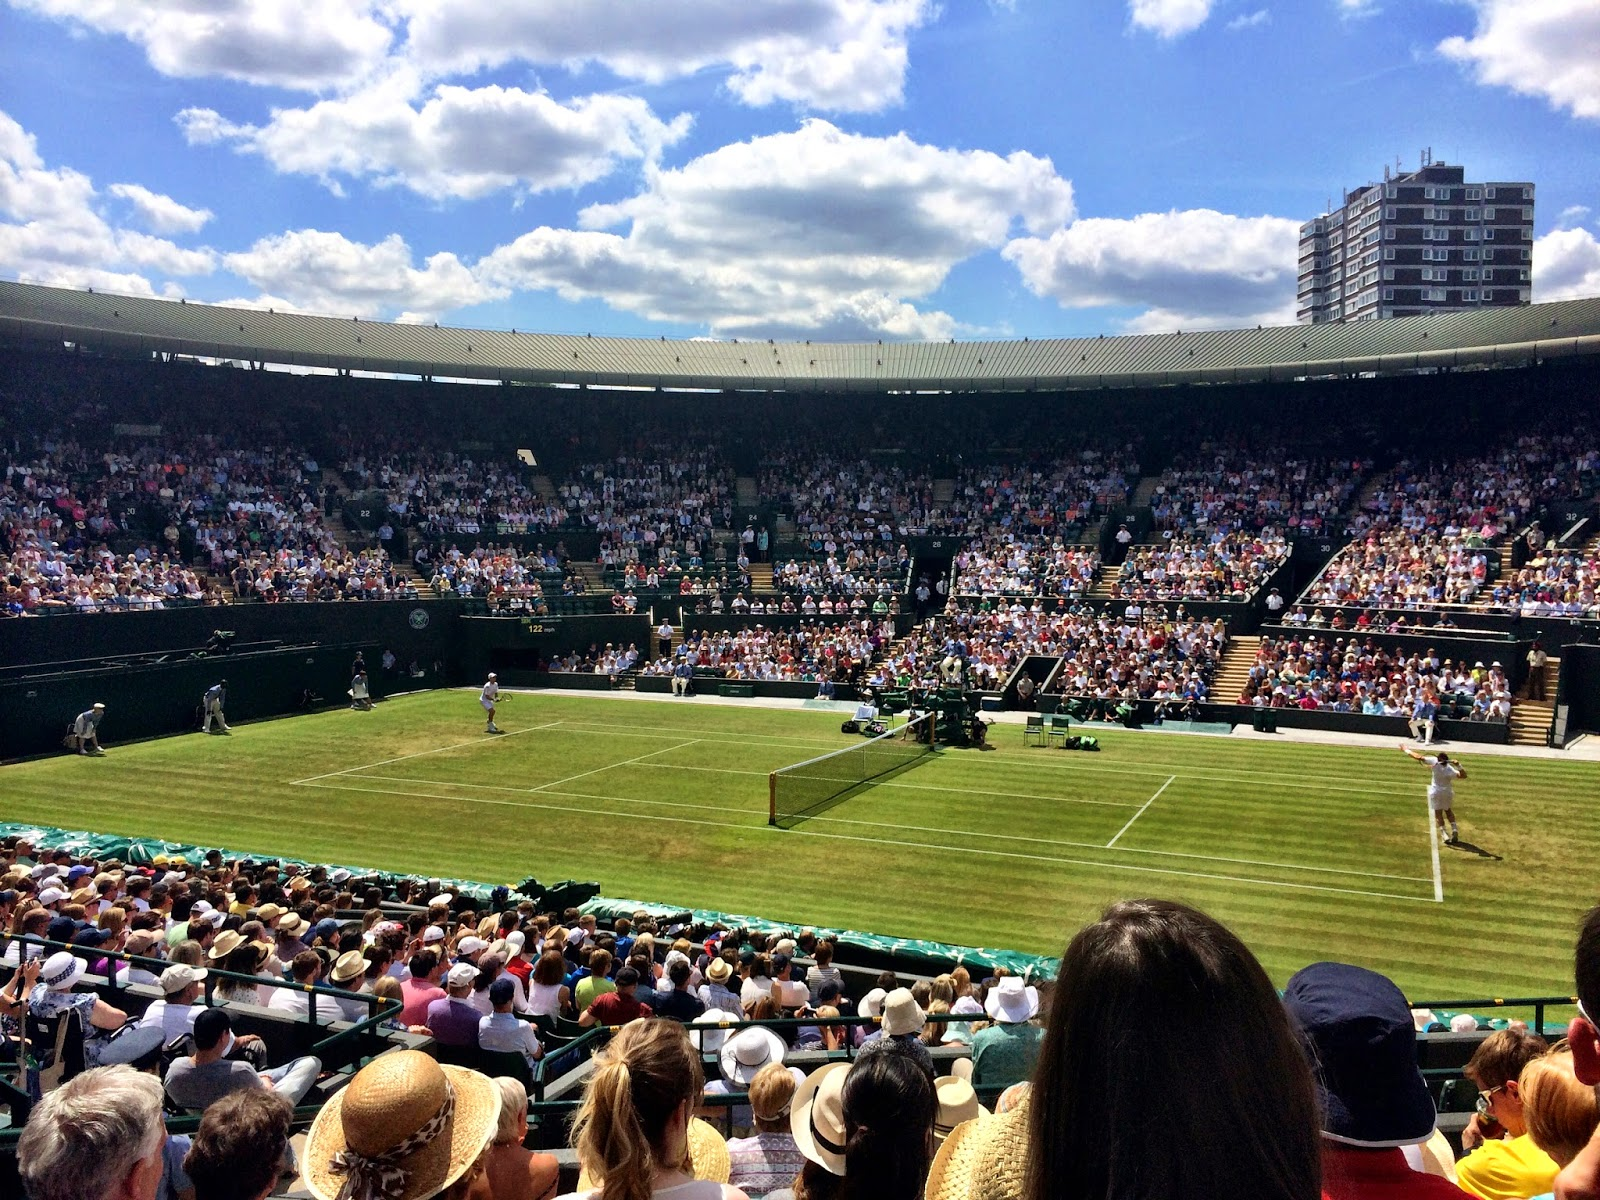 Andy Murray playing Blaz Rola on Court 1 - Wimbledon 2014